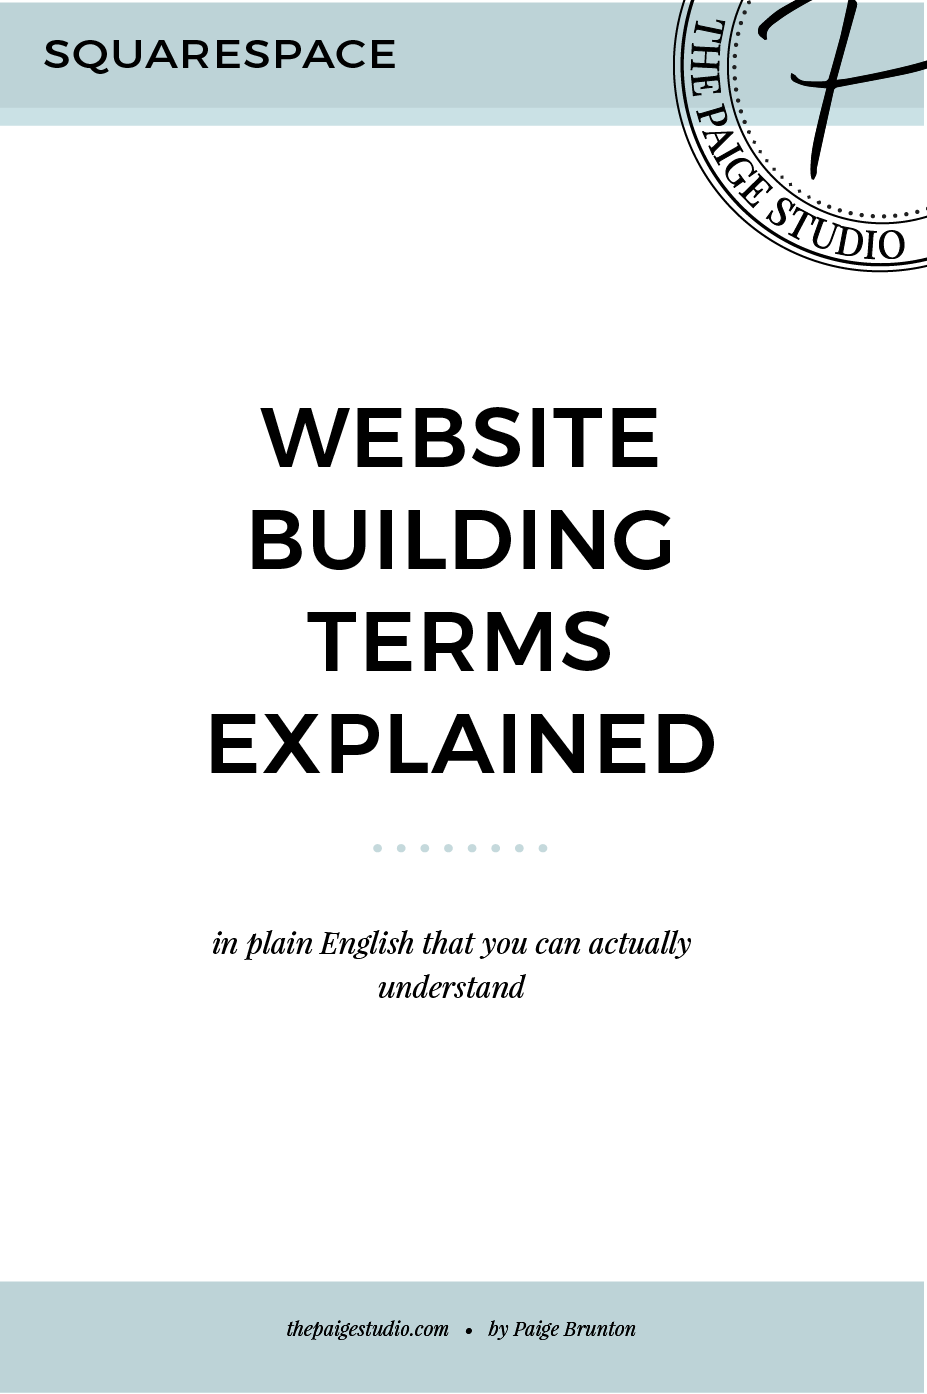 Website building terms explain in plain english you can actually understand.png